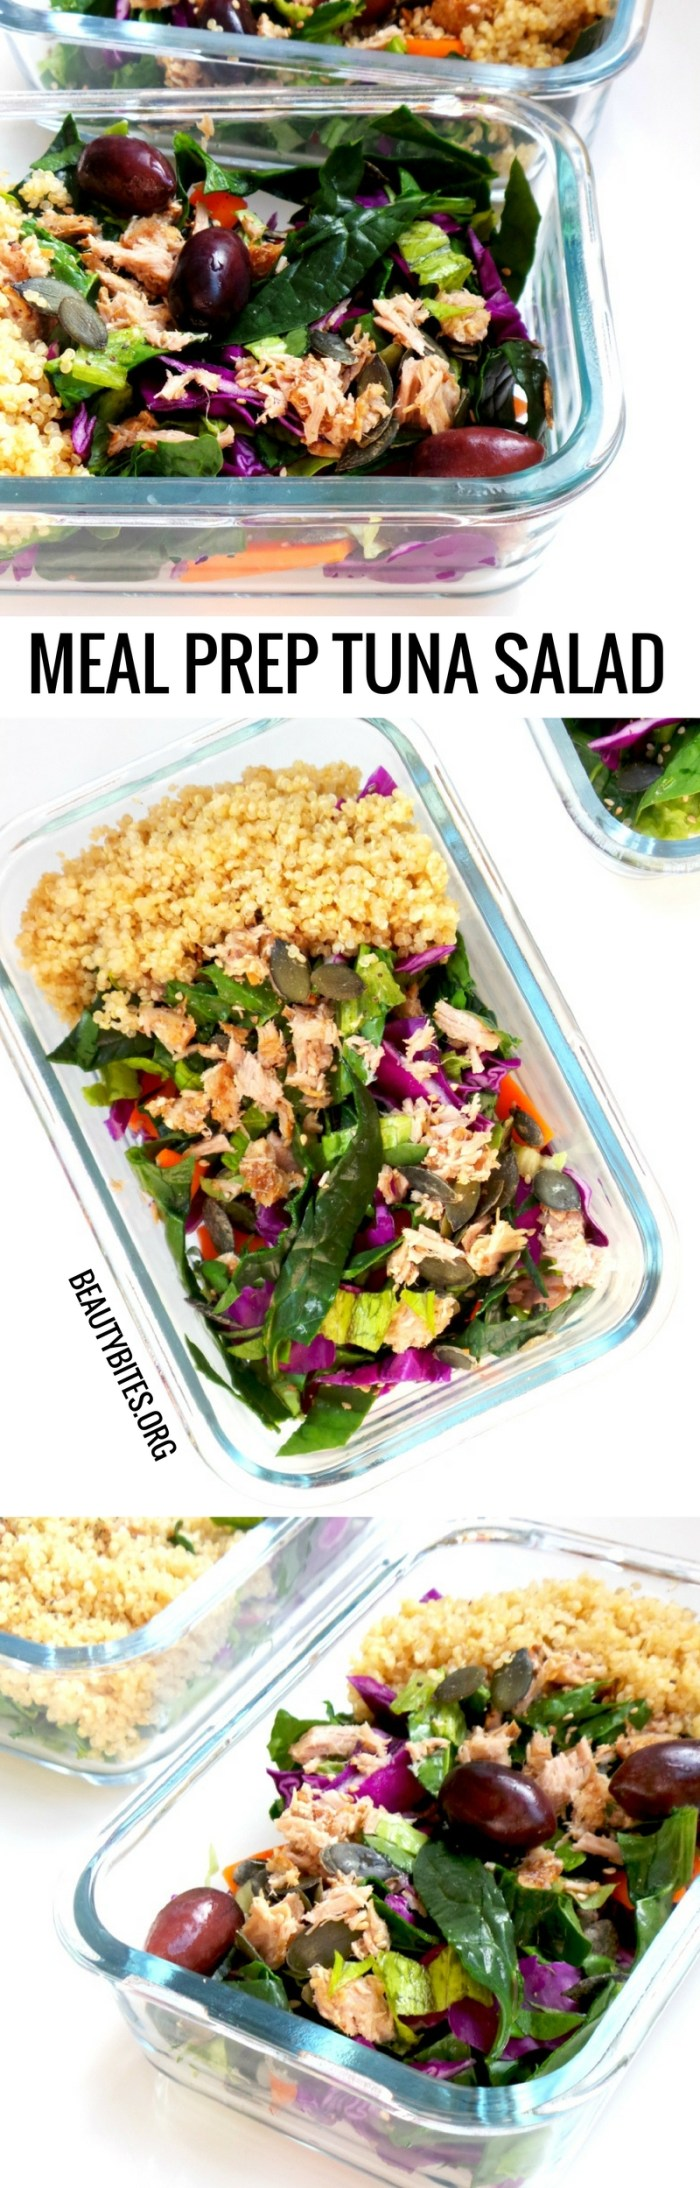 My Favortie Healthy Tuna Salad - The perfect high-protein recipe - fresh, satisfying and gluten-free. This healthy high-protein salad makes also a great meal prep recipe! | Meal Prep For The Week | www.beautybites.org/healthy-tuna-salad-with-meal-prep-option-high-protein-salad-recipe